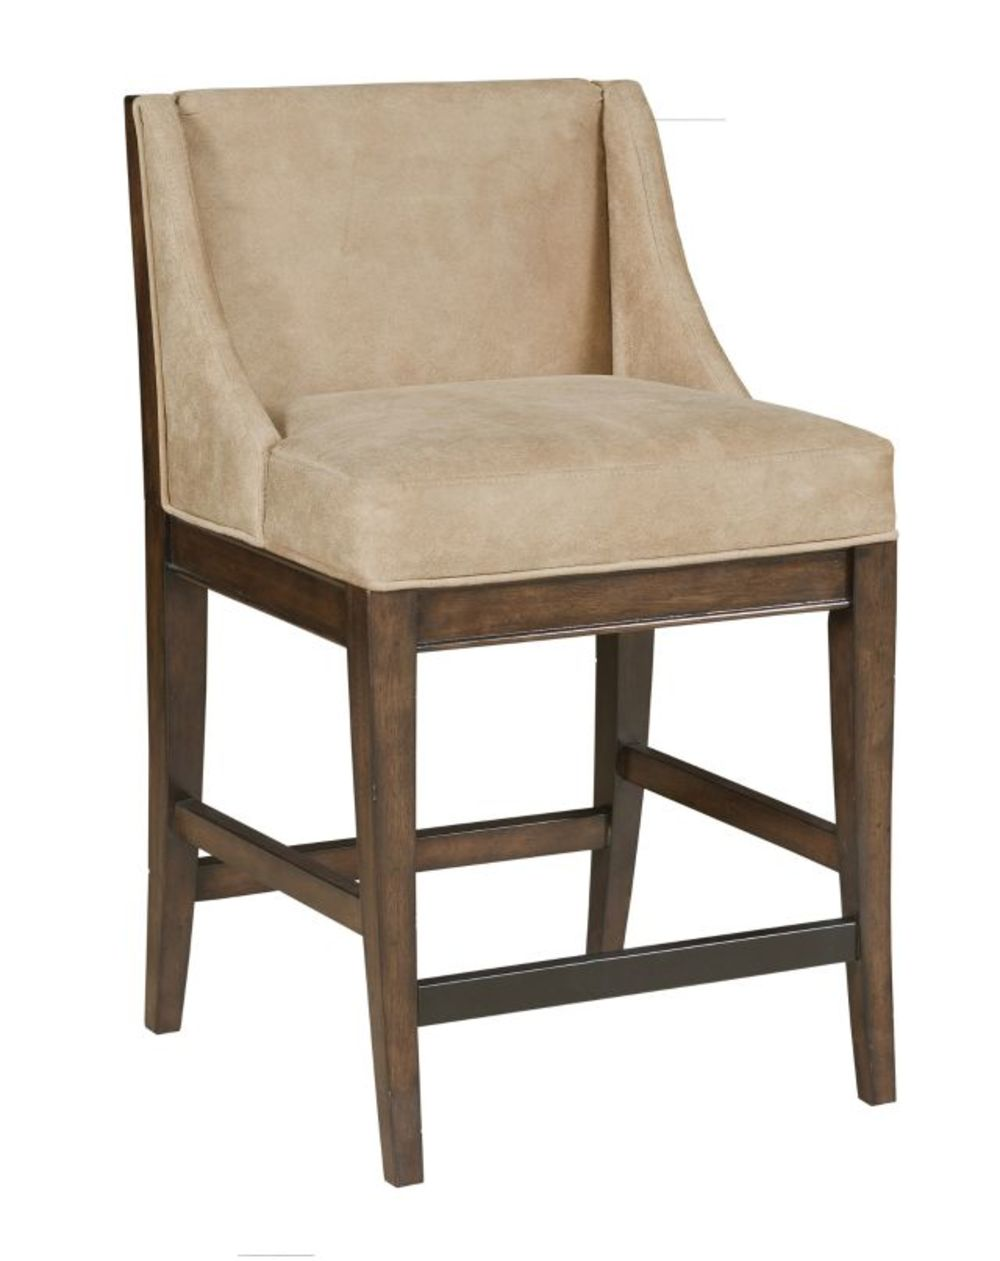 Hammary Furniture - Counter Stool